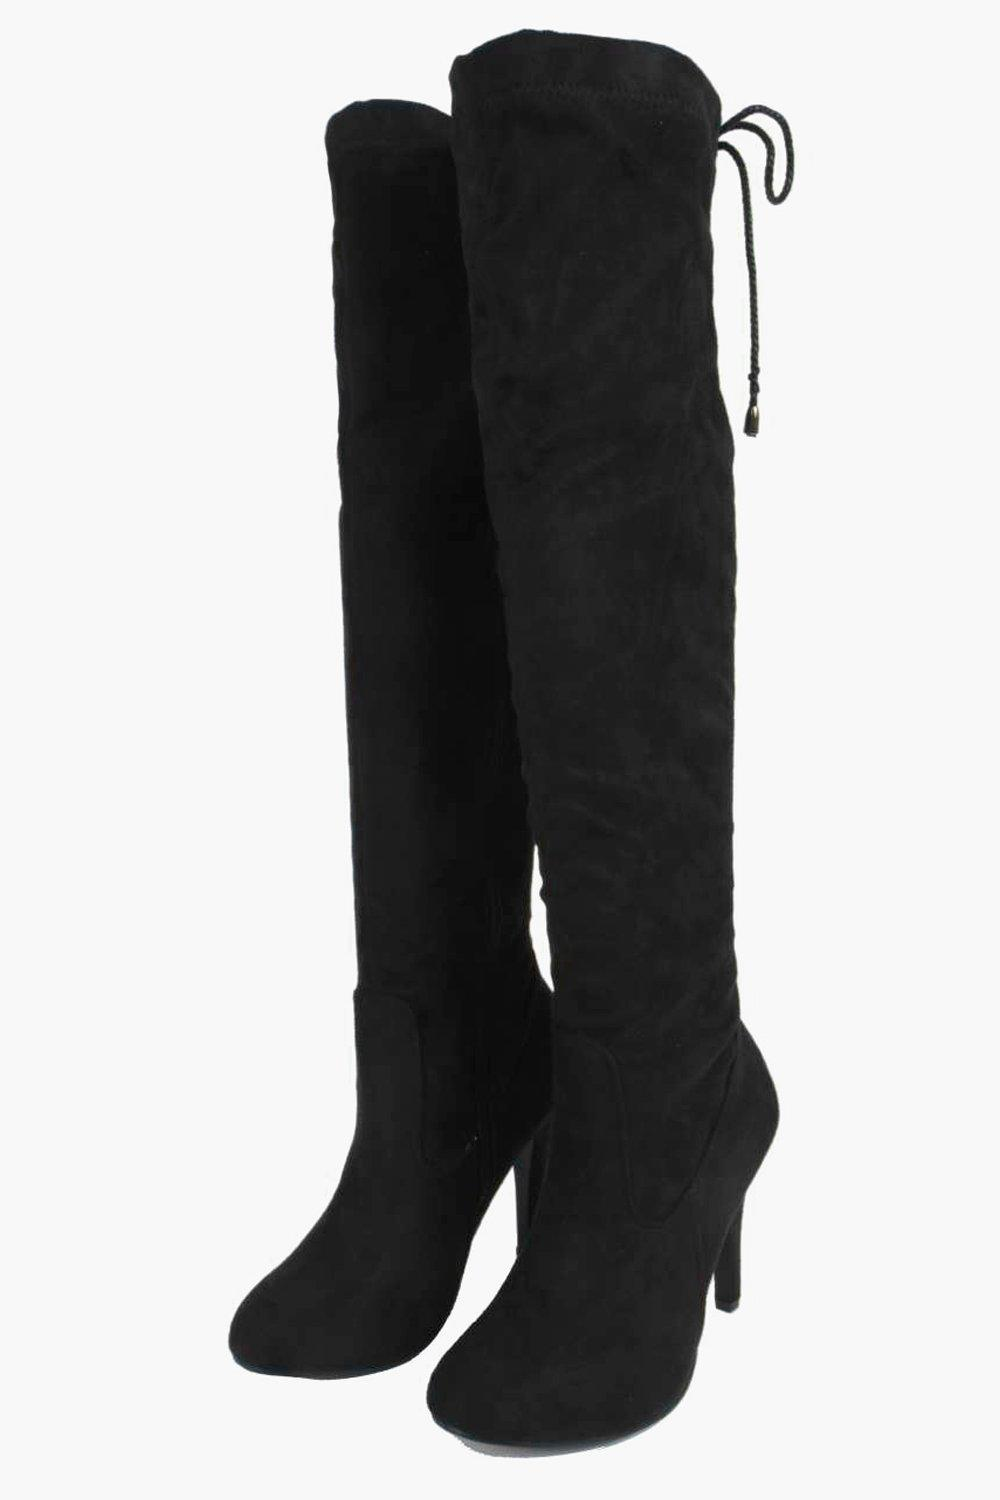 Boohoo Synthetic Isla Stretch Over Knee Pointed Boot in Black